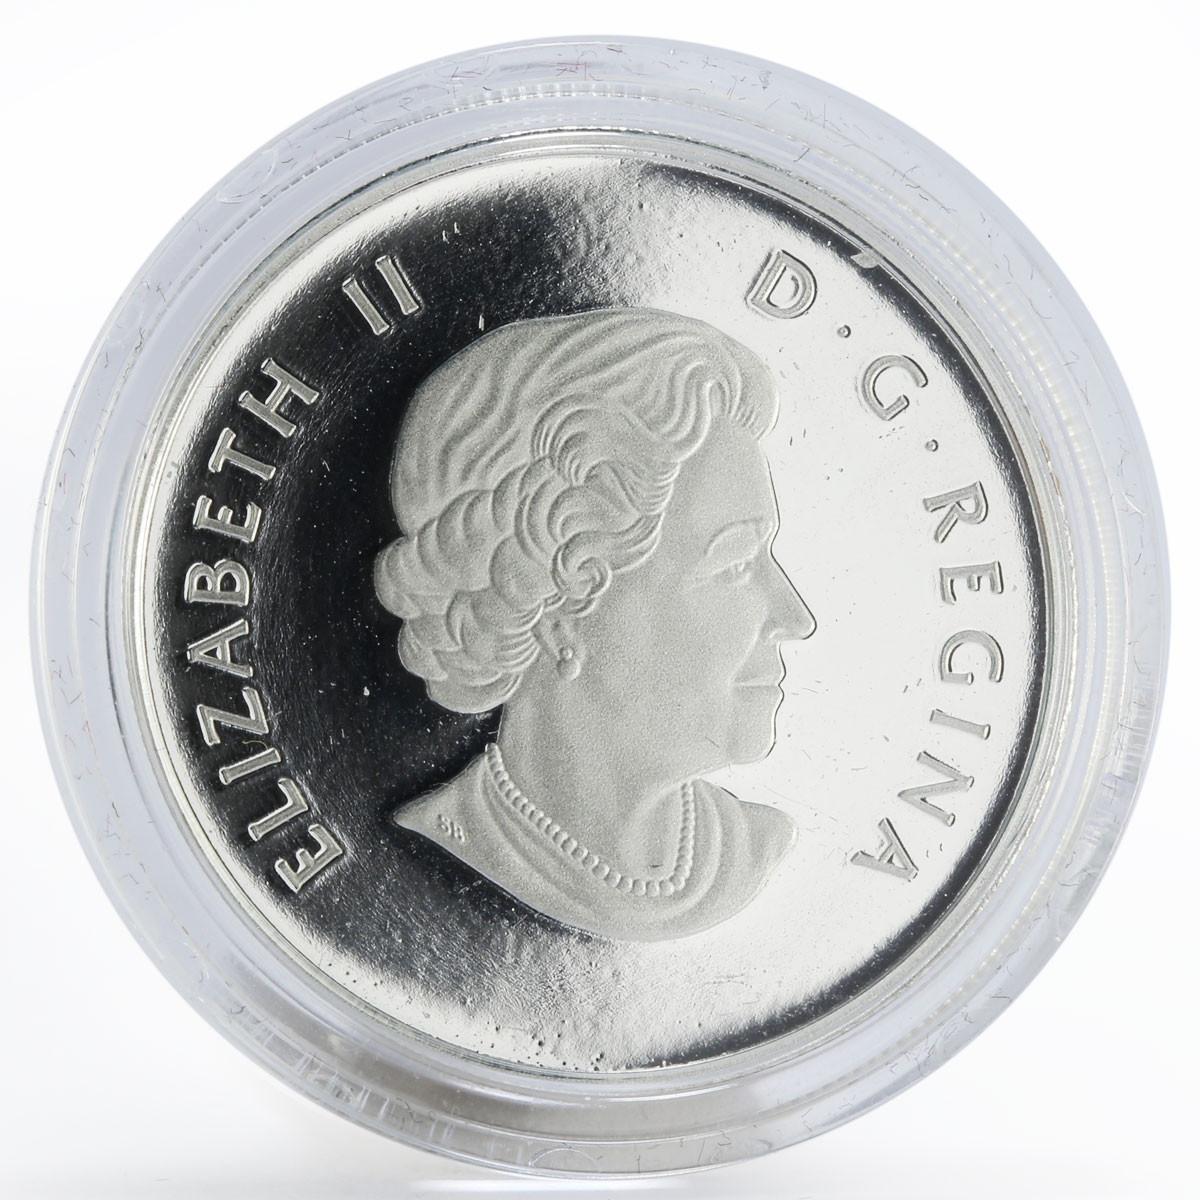 Canada 4 dollars Welcome to the World proof silver coin 2011